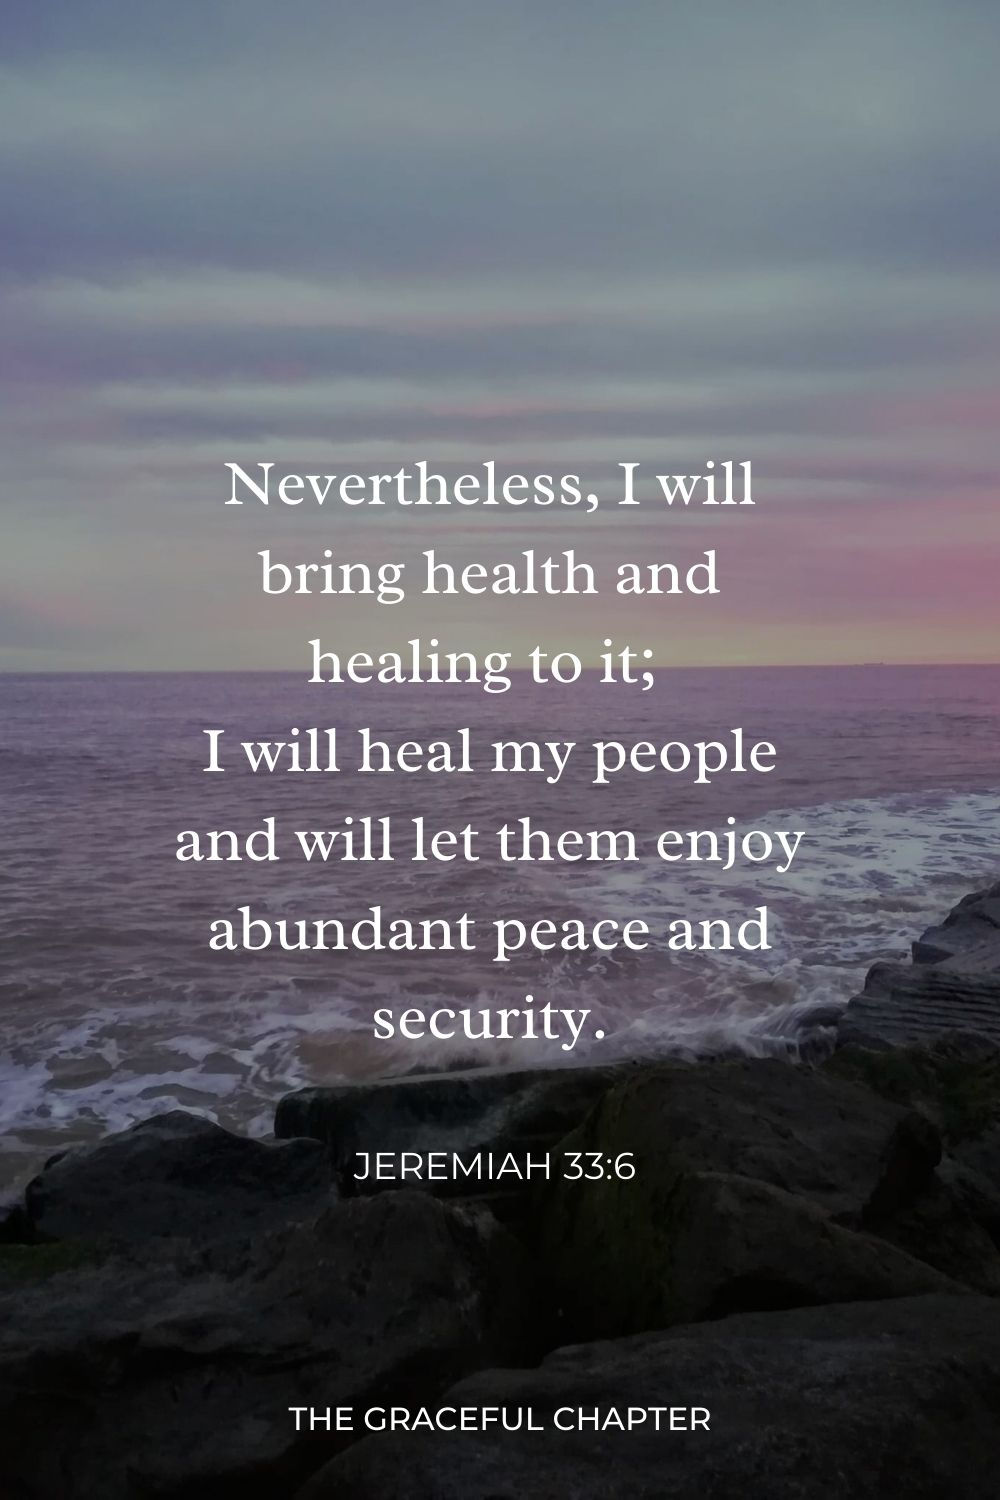 Nevertheless, I will bring health and healing to it; I will heal my people and will let them enjoy abundant peace and security. Jeremiah 33:6